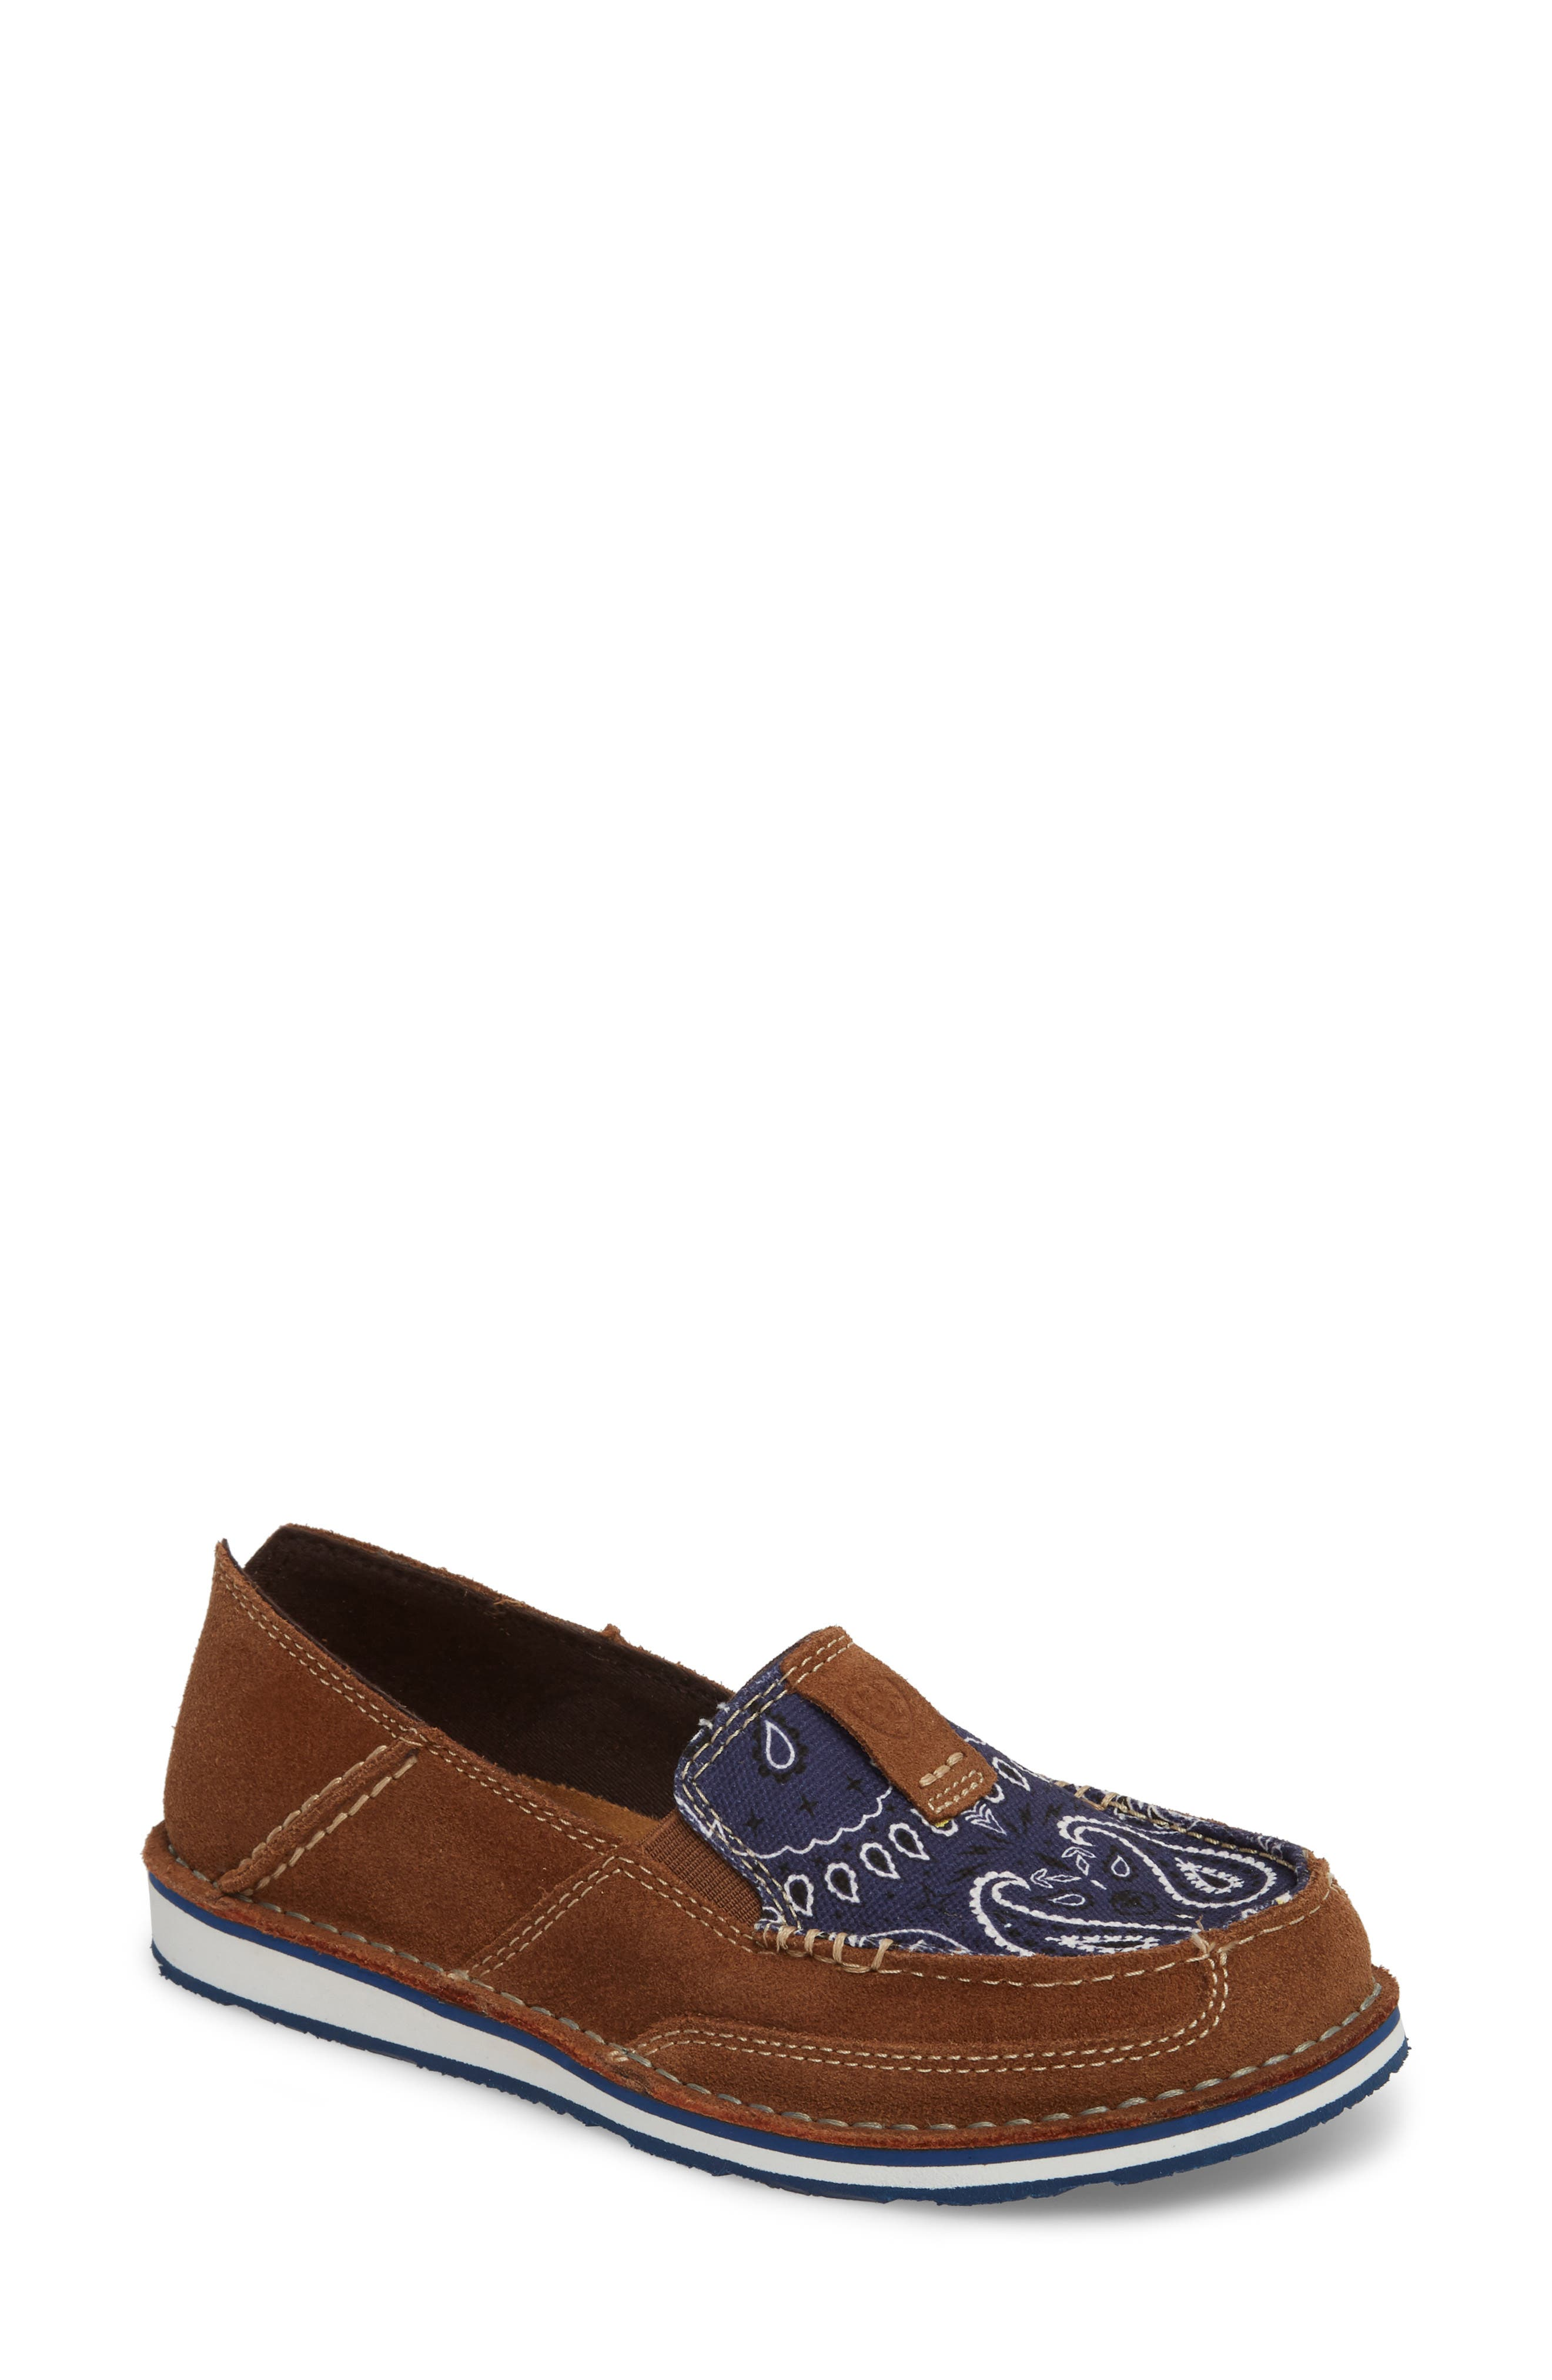 Cruiser Slip-On Loafer,                         Main,                         color, Toffee Leather